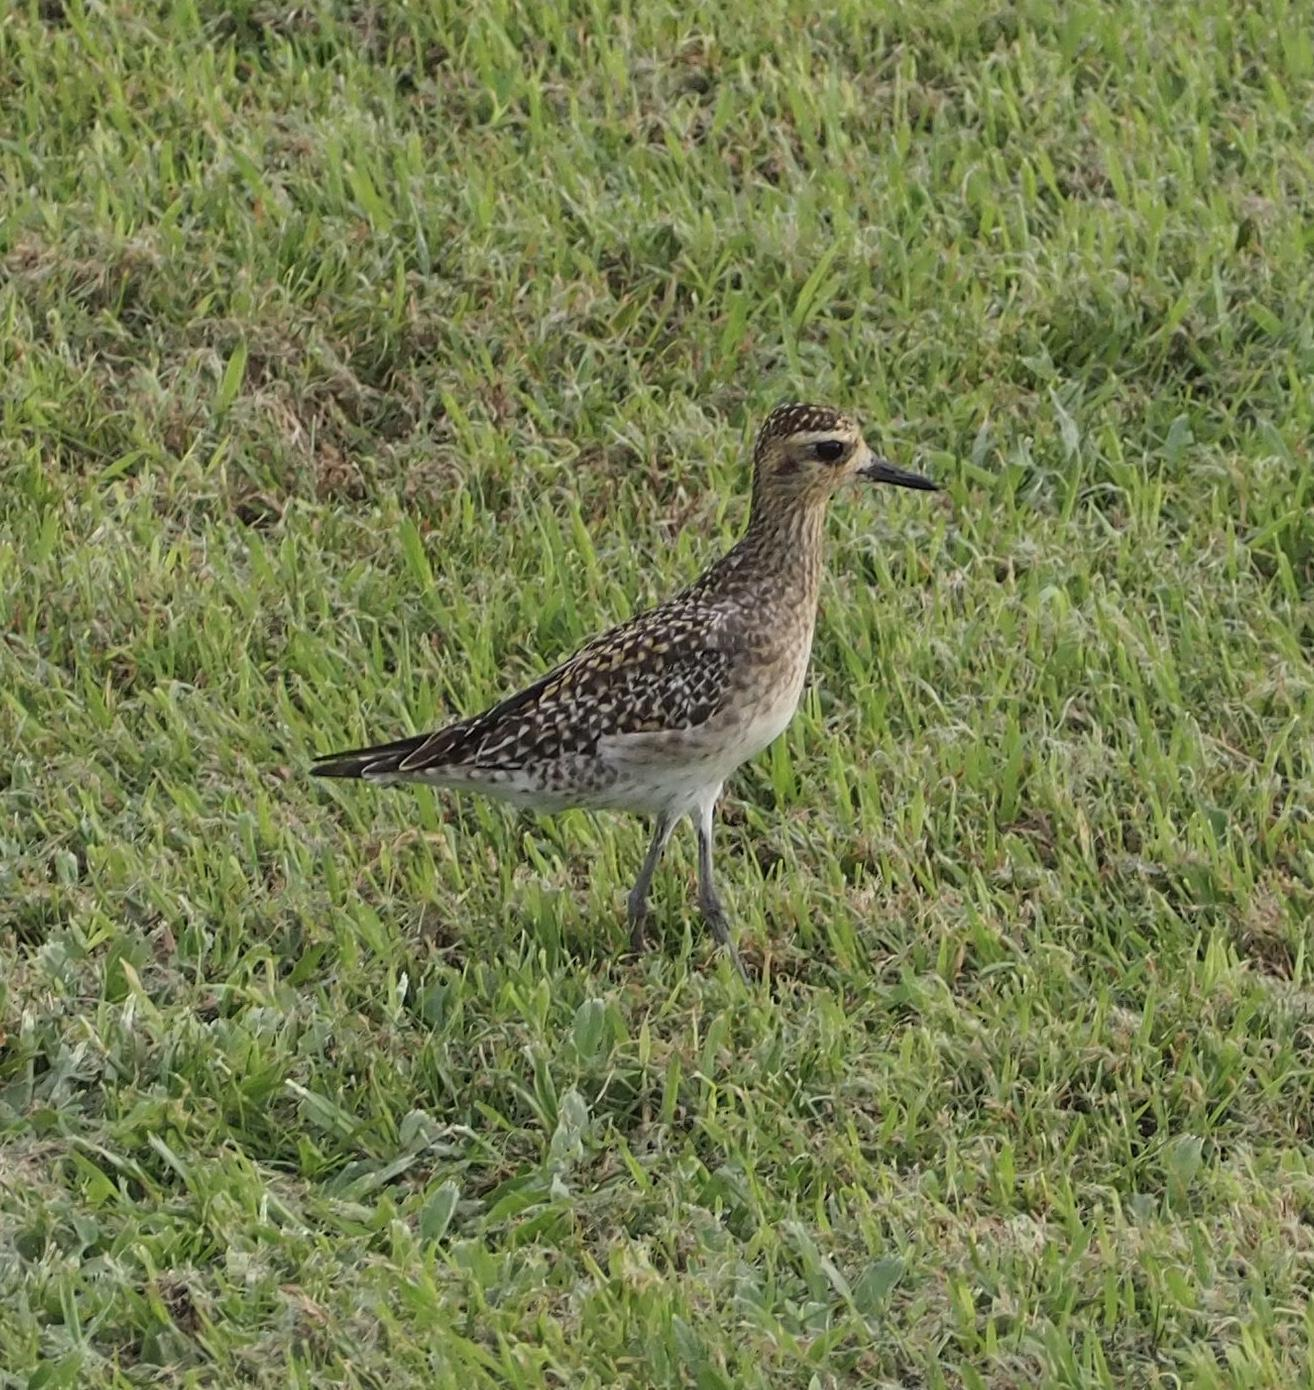 Pacific Golden-Plover Photo by Davy Tolman